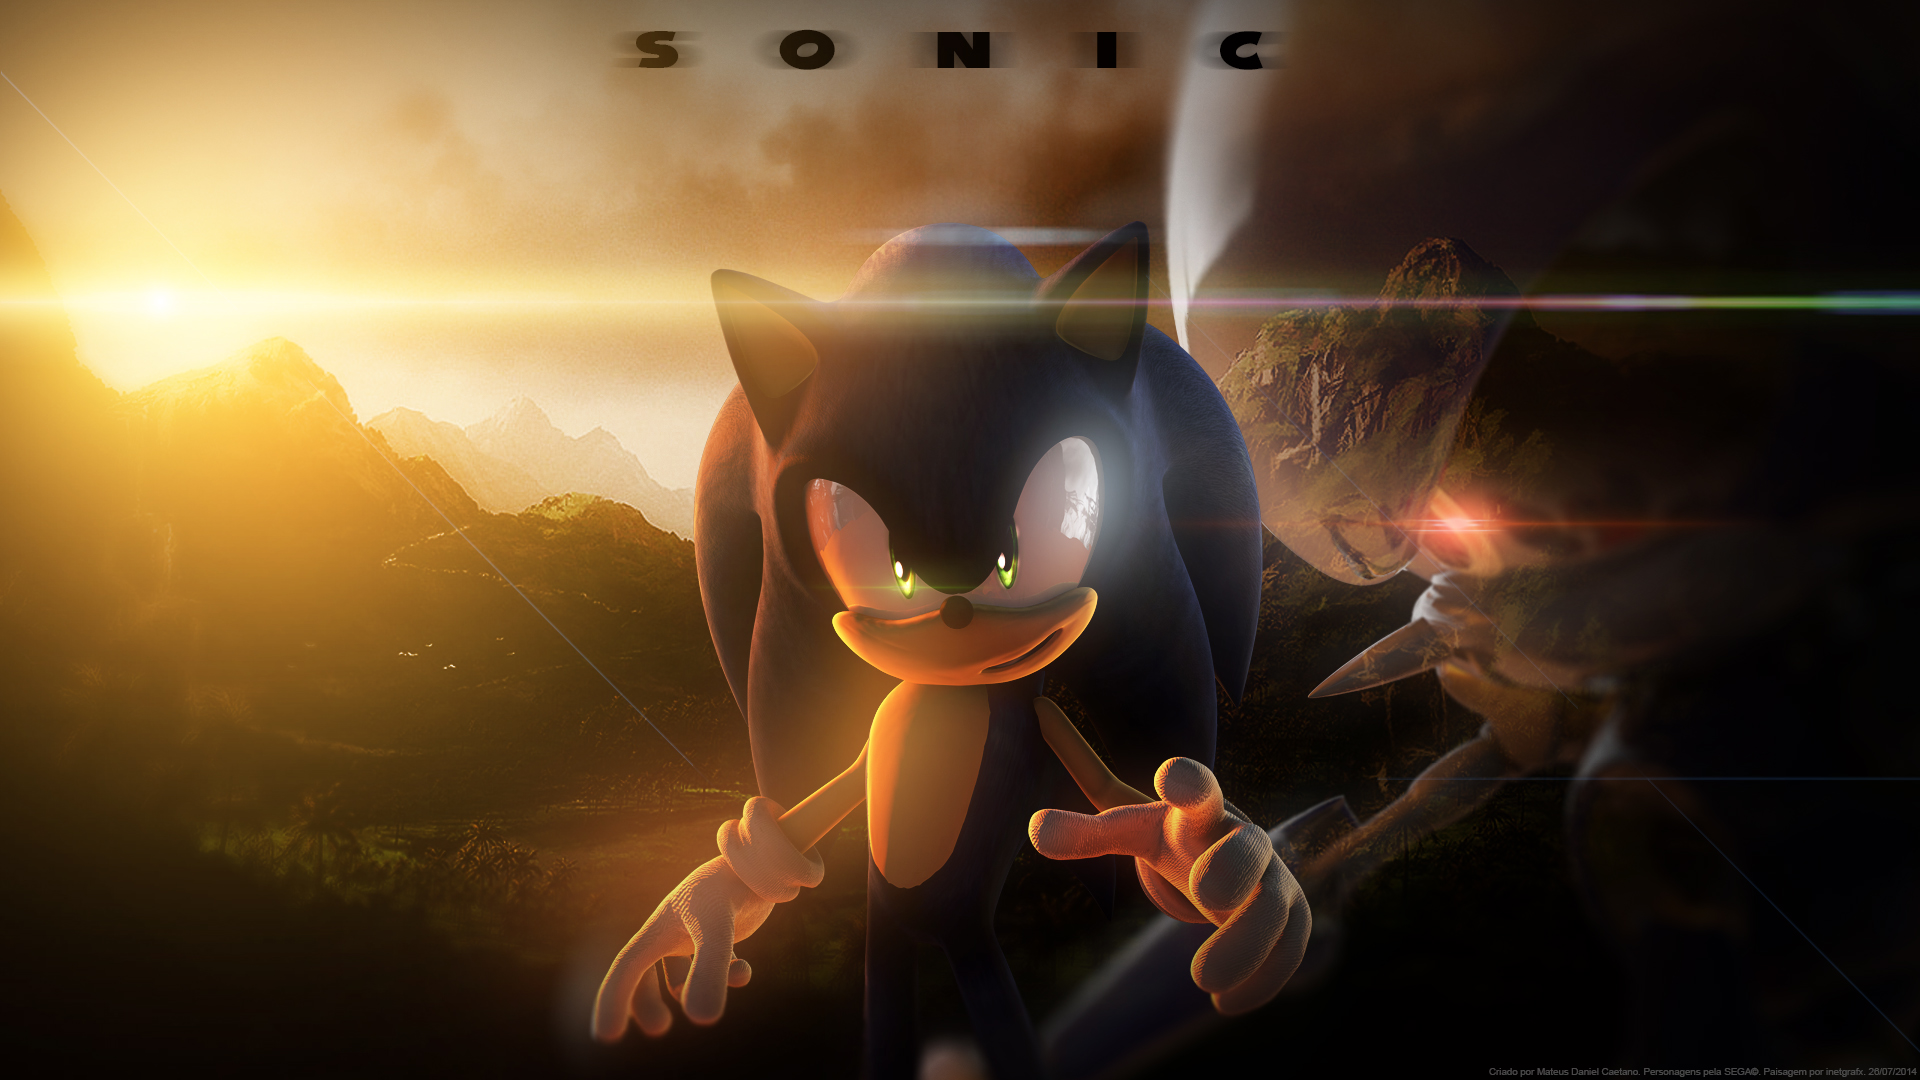 epic_sonic_wallpaper_2_by_mateus2014d7sd956.jpg (1920